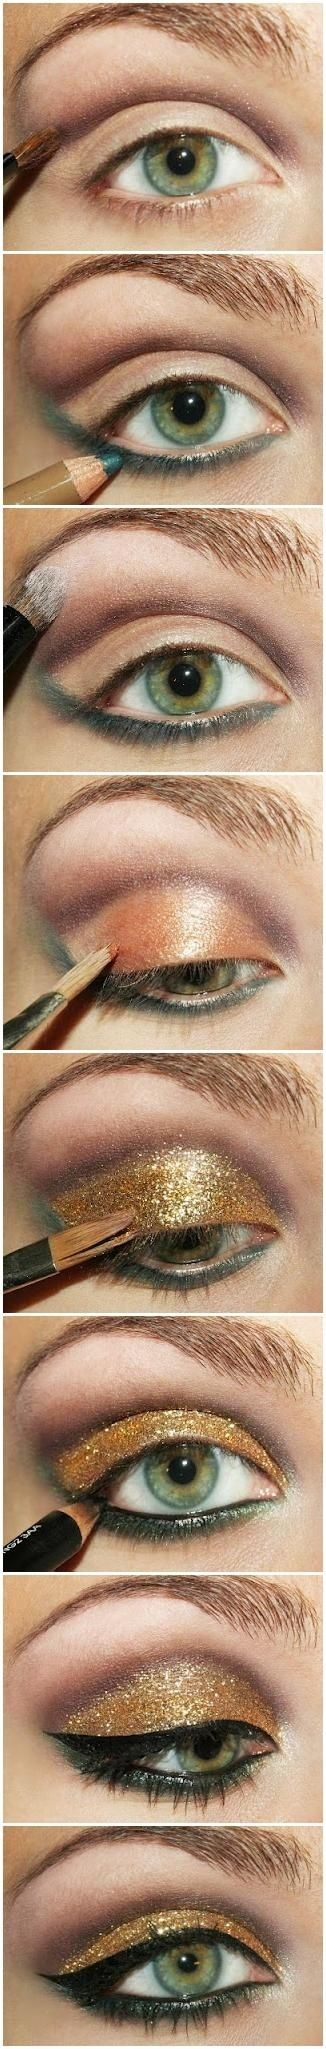 Emerald and gold eye with winged liner